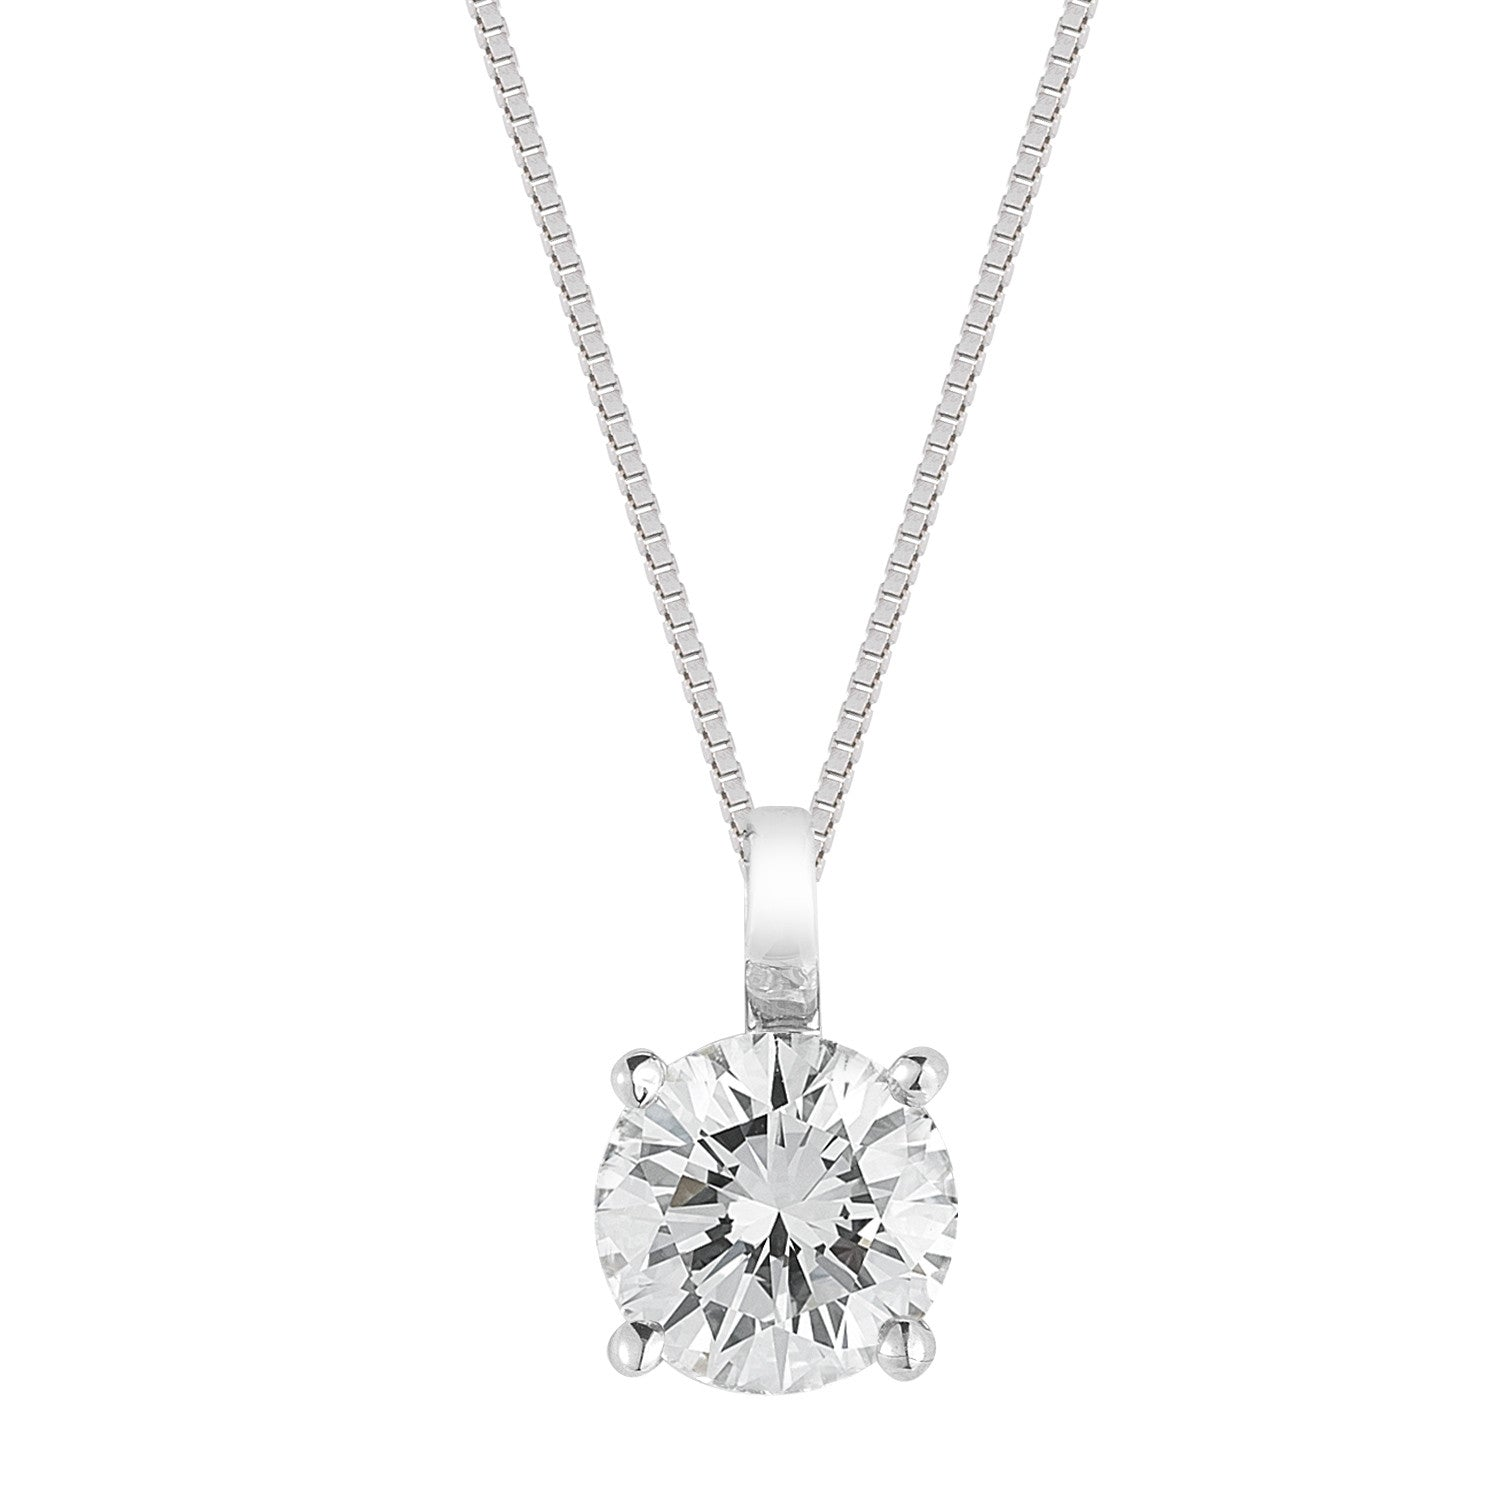 Four Prong Diamond Solitaire Pendant-30% OFF SELECT SIZES!